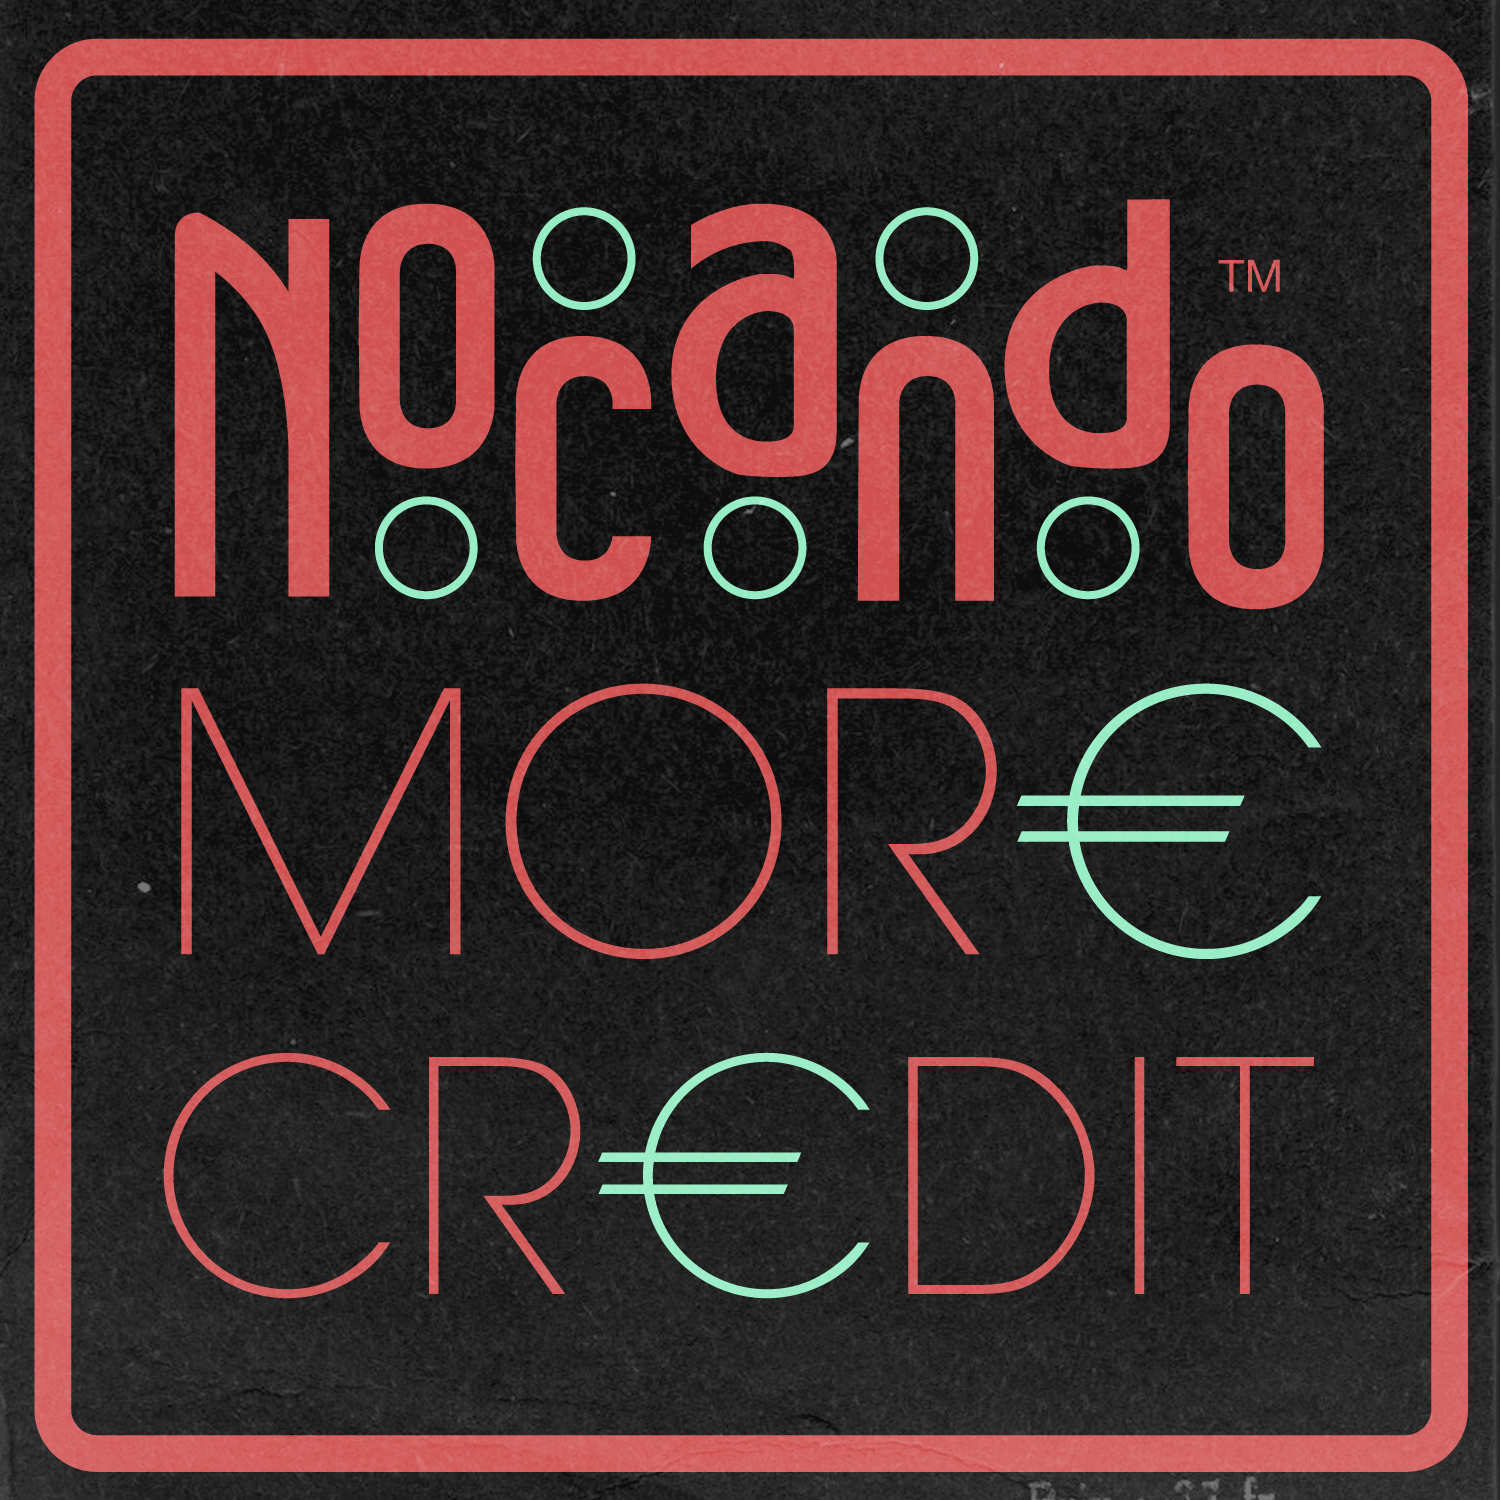 Nocando - MOR€ CR€DIT [mp3]